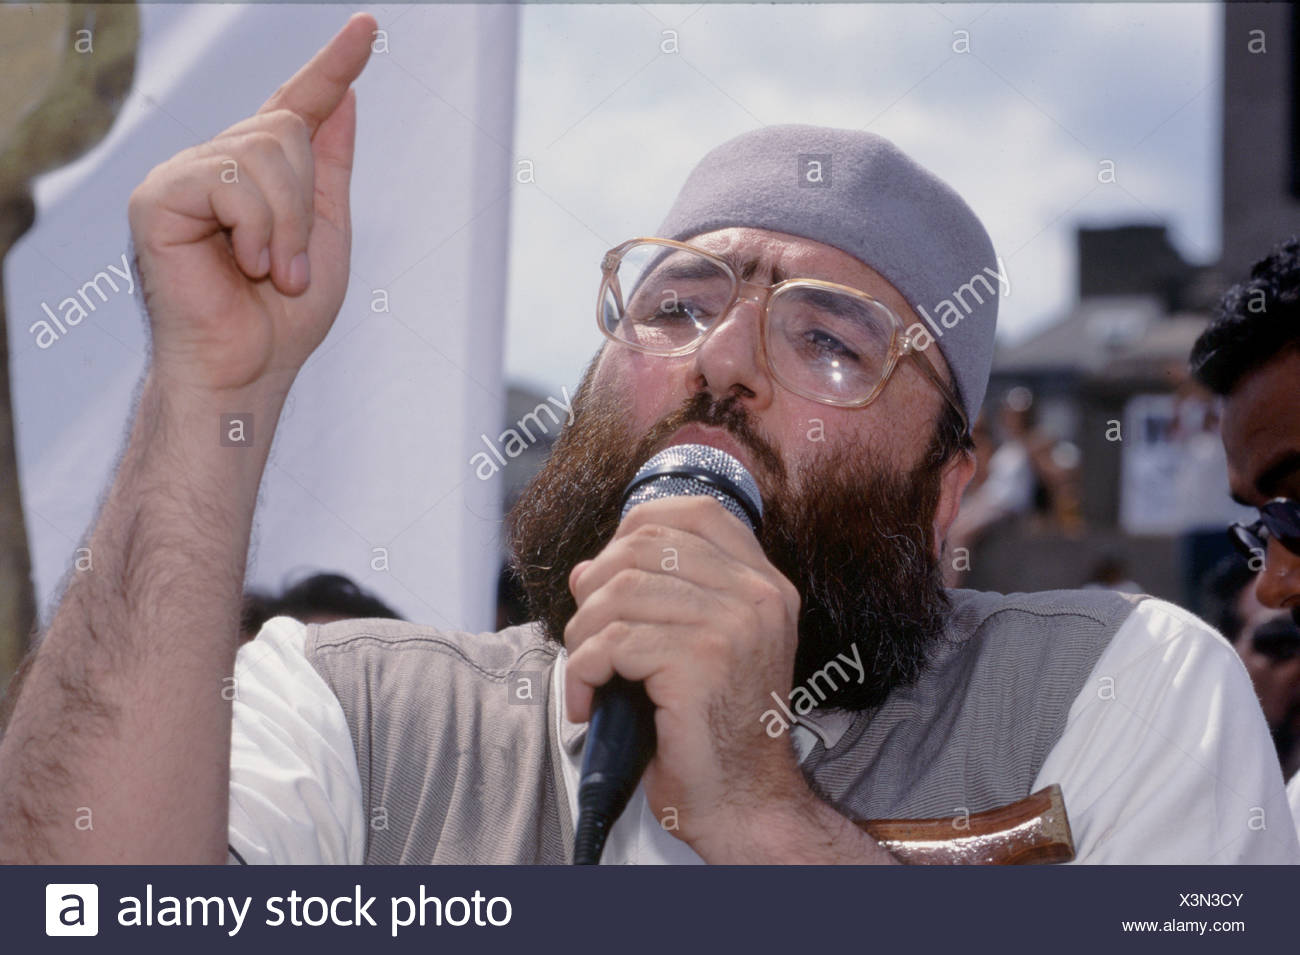 Sheikh Omar Bakri Muhammad Amir aka Tottenham Ayatollah of Al Muhajiroun at rally for Islam in Trafalgar Square - Stock Image